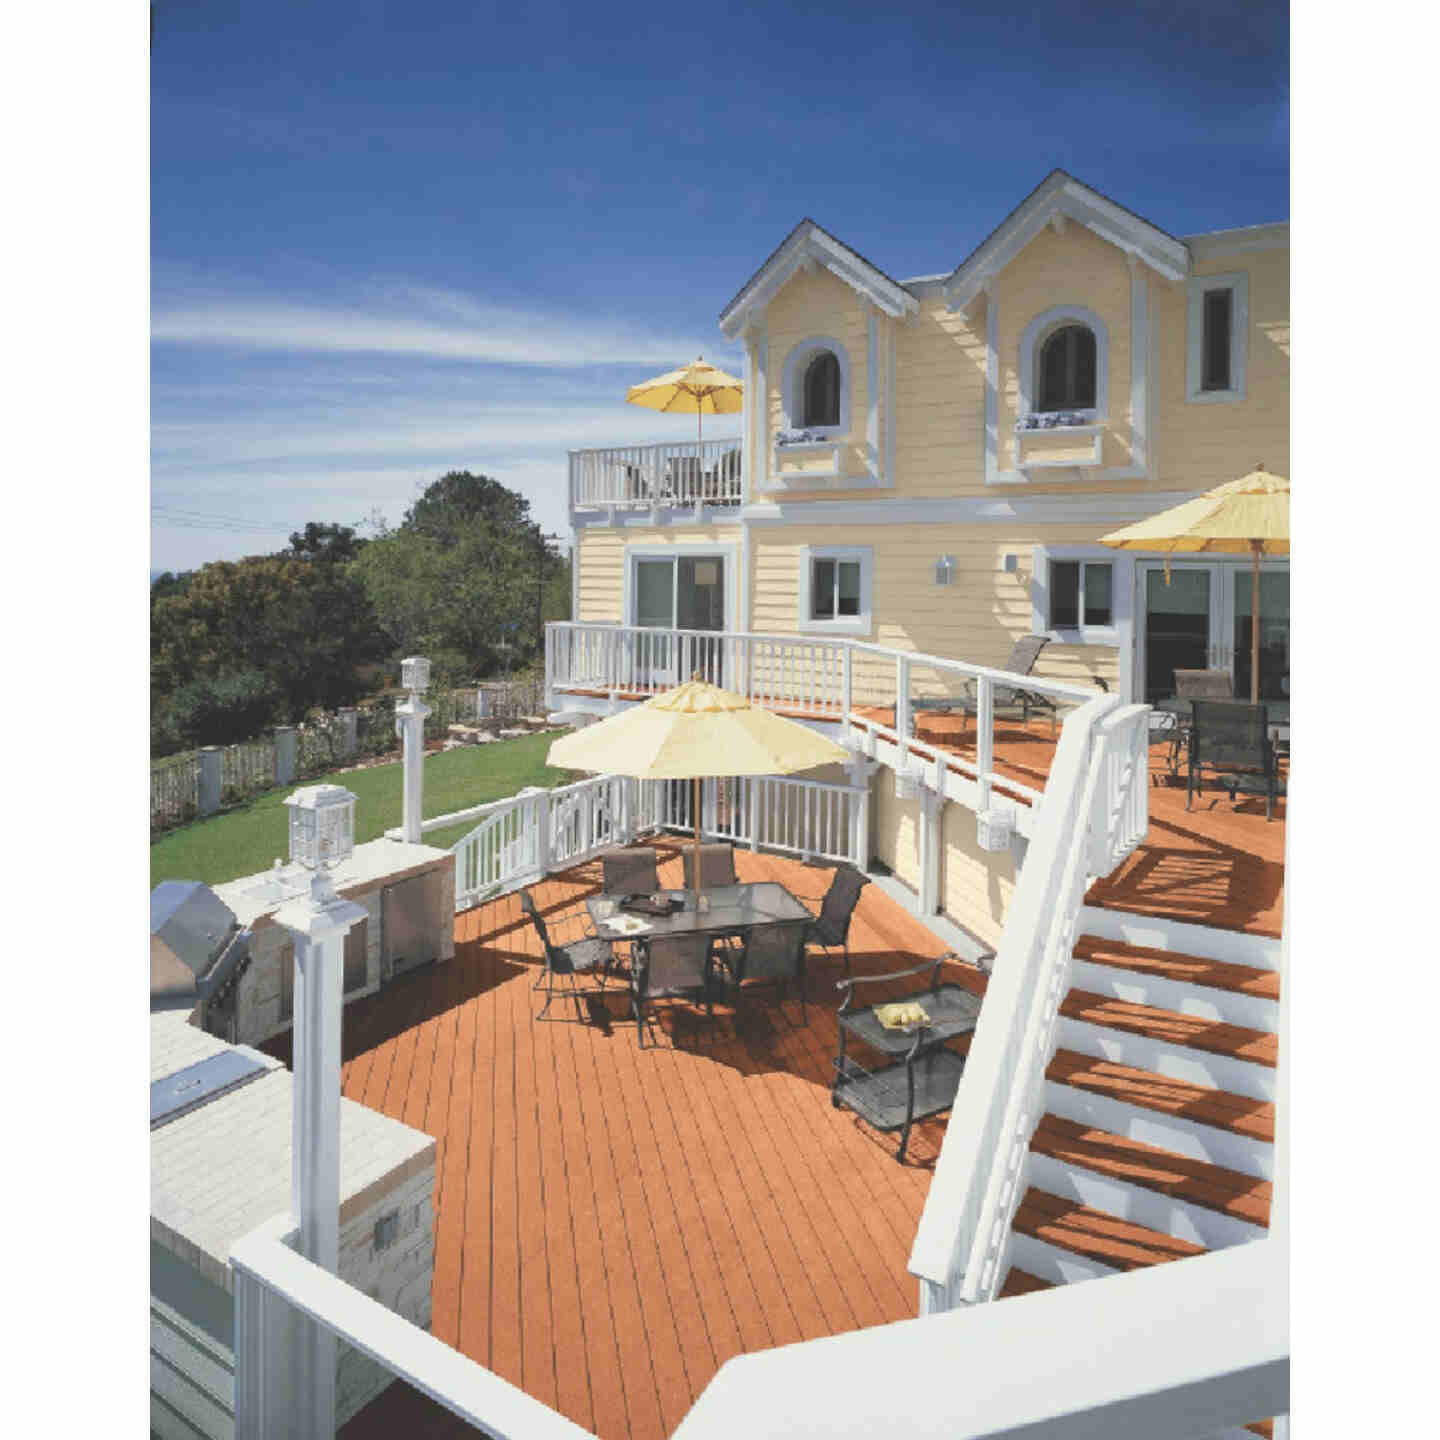 Cabot Solid Color Acrylic Siding Exterior Stain, Neutral Base, 1 Gal. Image 2